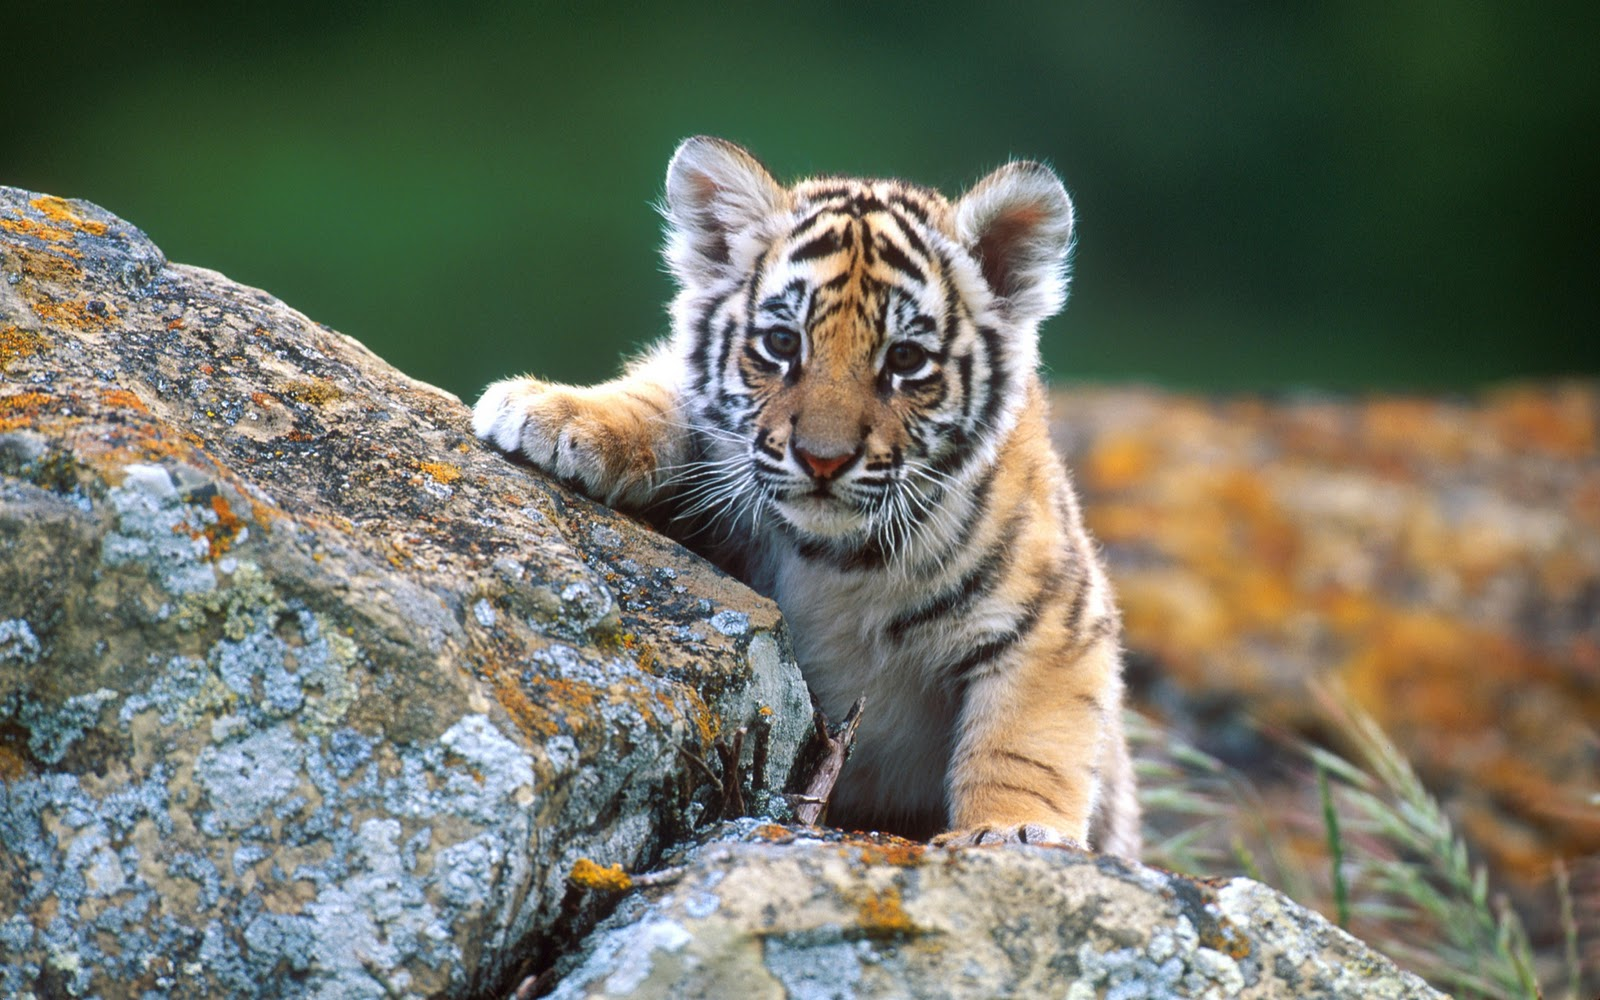 Tiger Images And Mobile Wallpapers